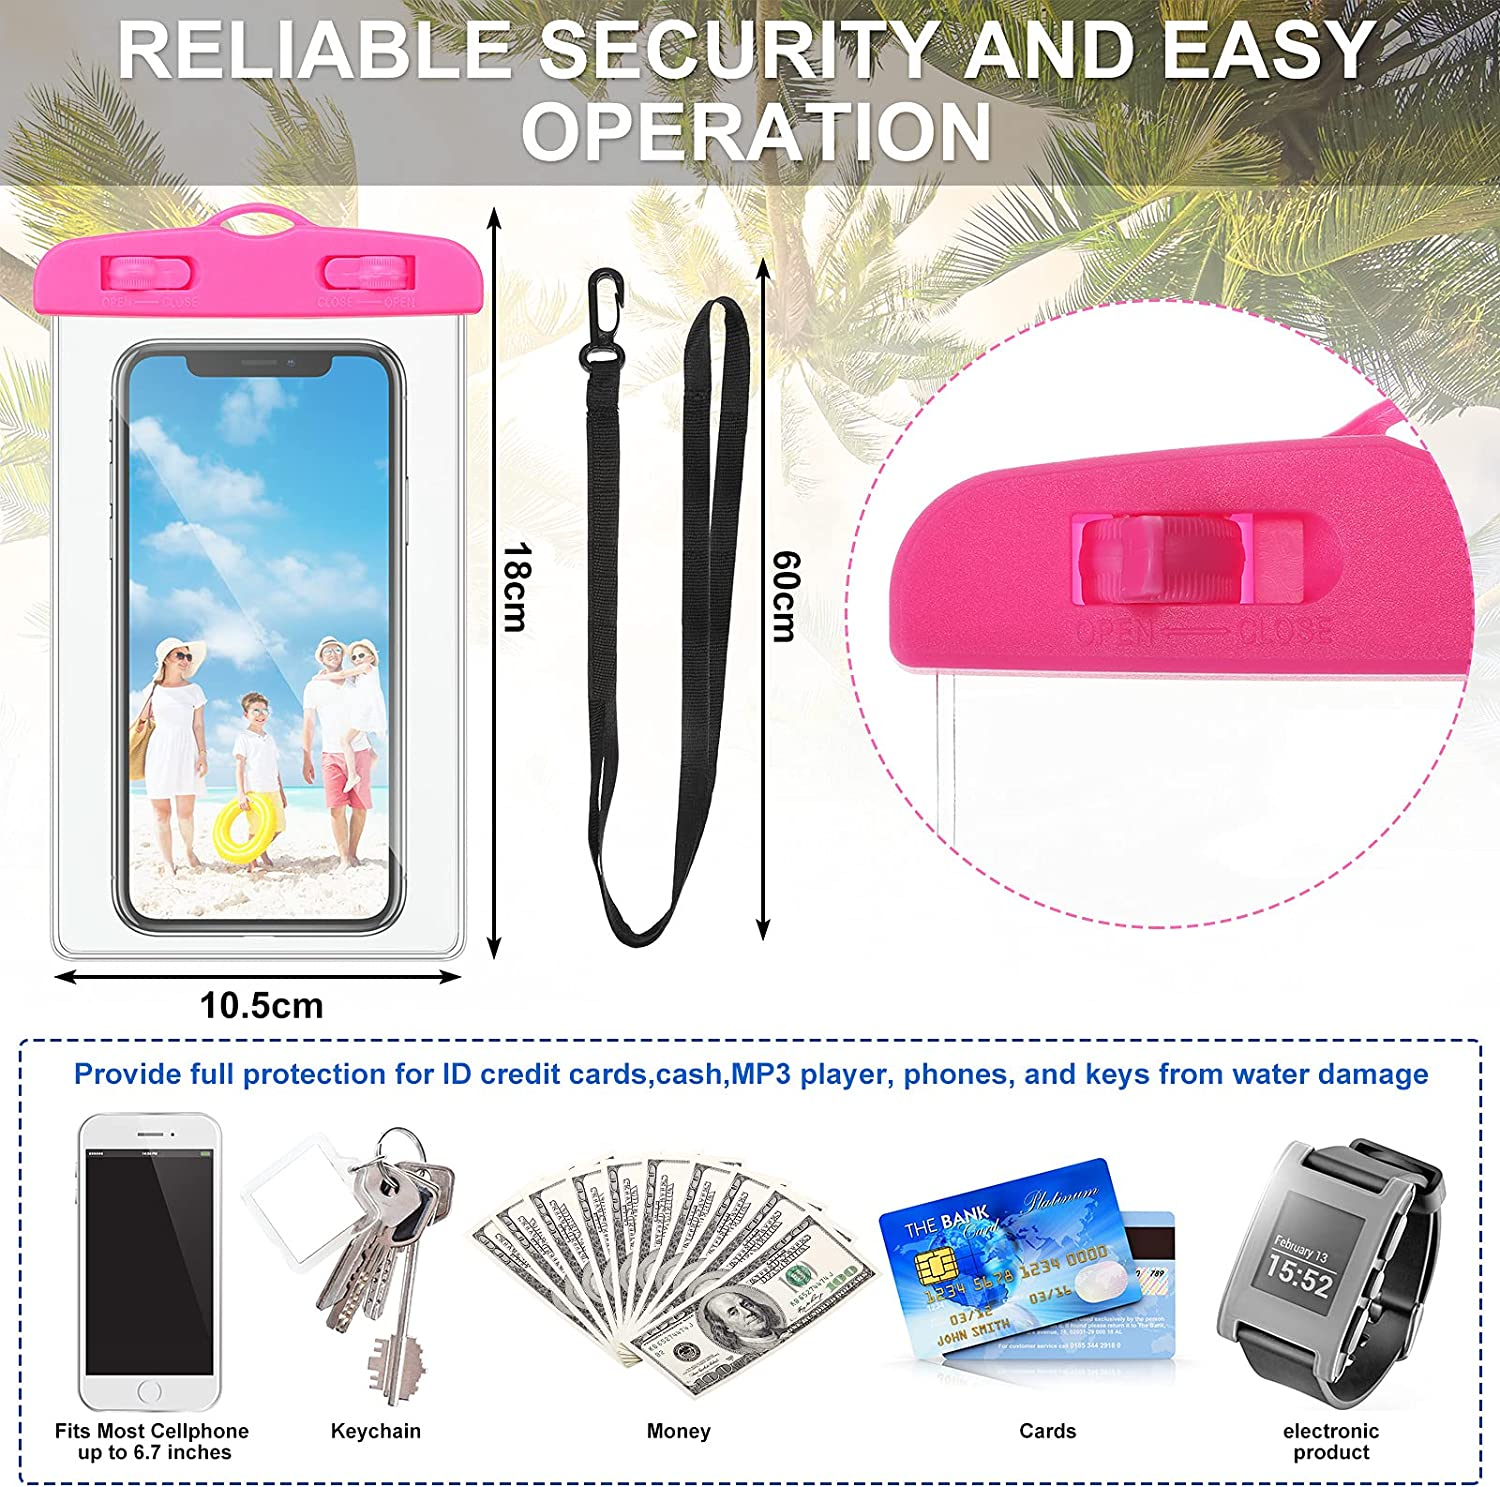 36 Pieces Universal Waterproof Phone Pouch Cell Phone Dry Bag with Lanyard Waterproof Phone Case Outdoor Swimming Phone Bag for Most Smartphones and Tablets, 2 Designs